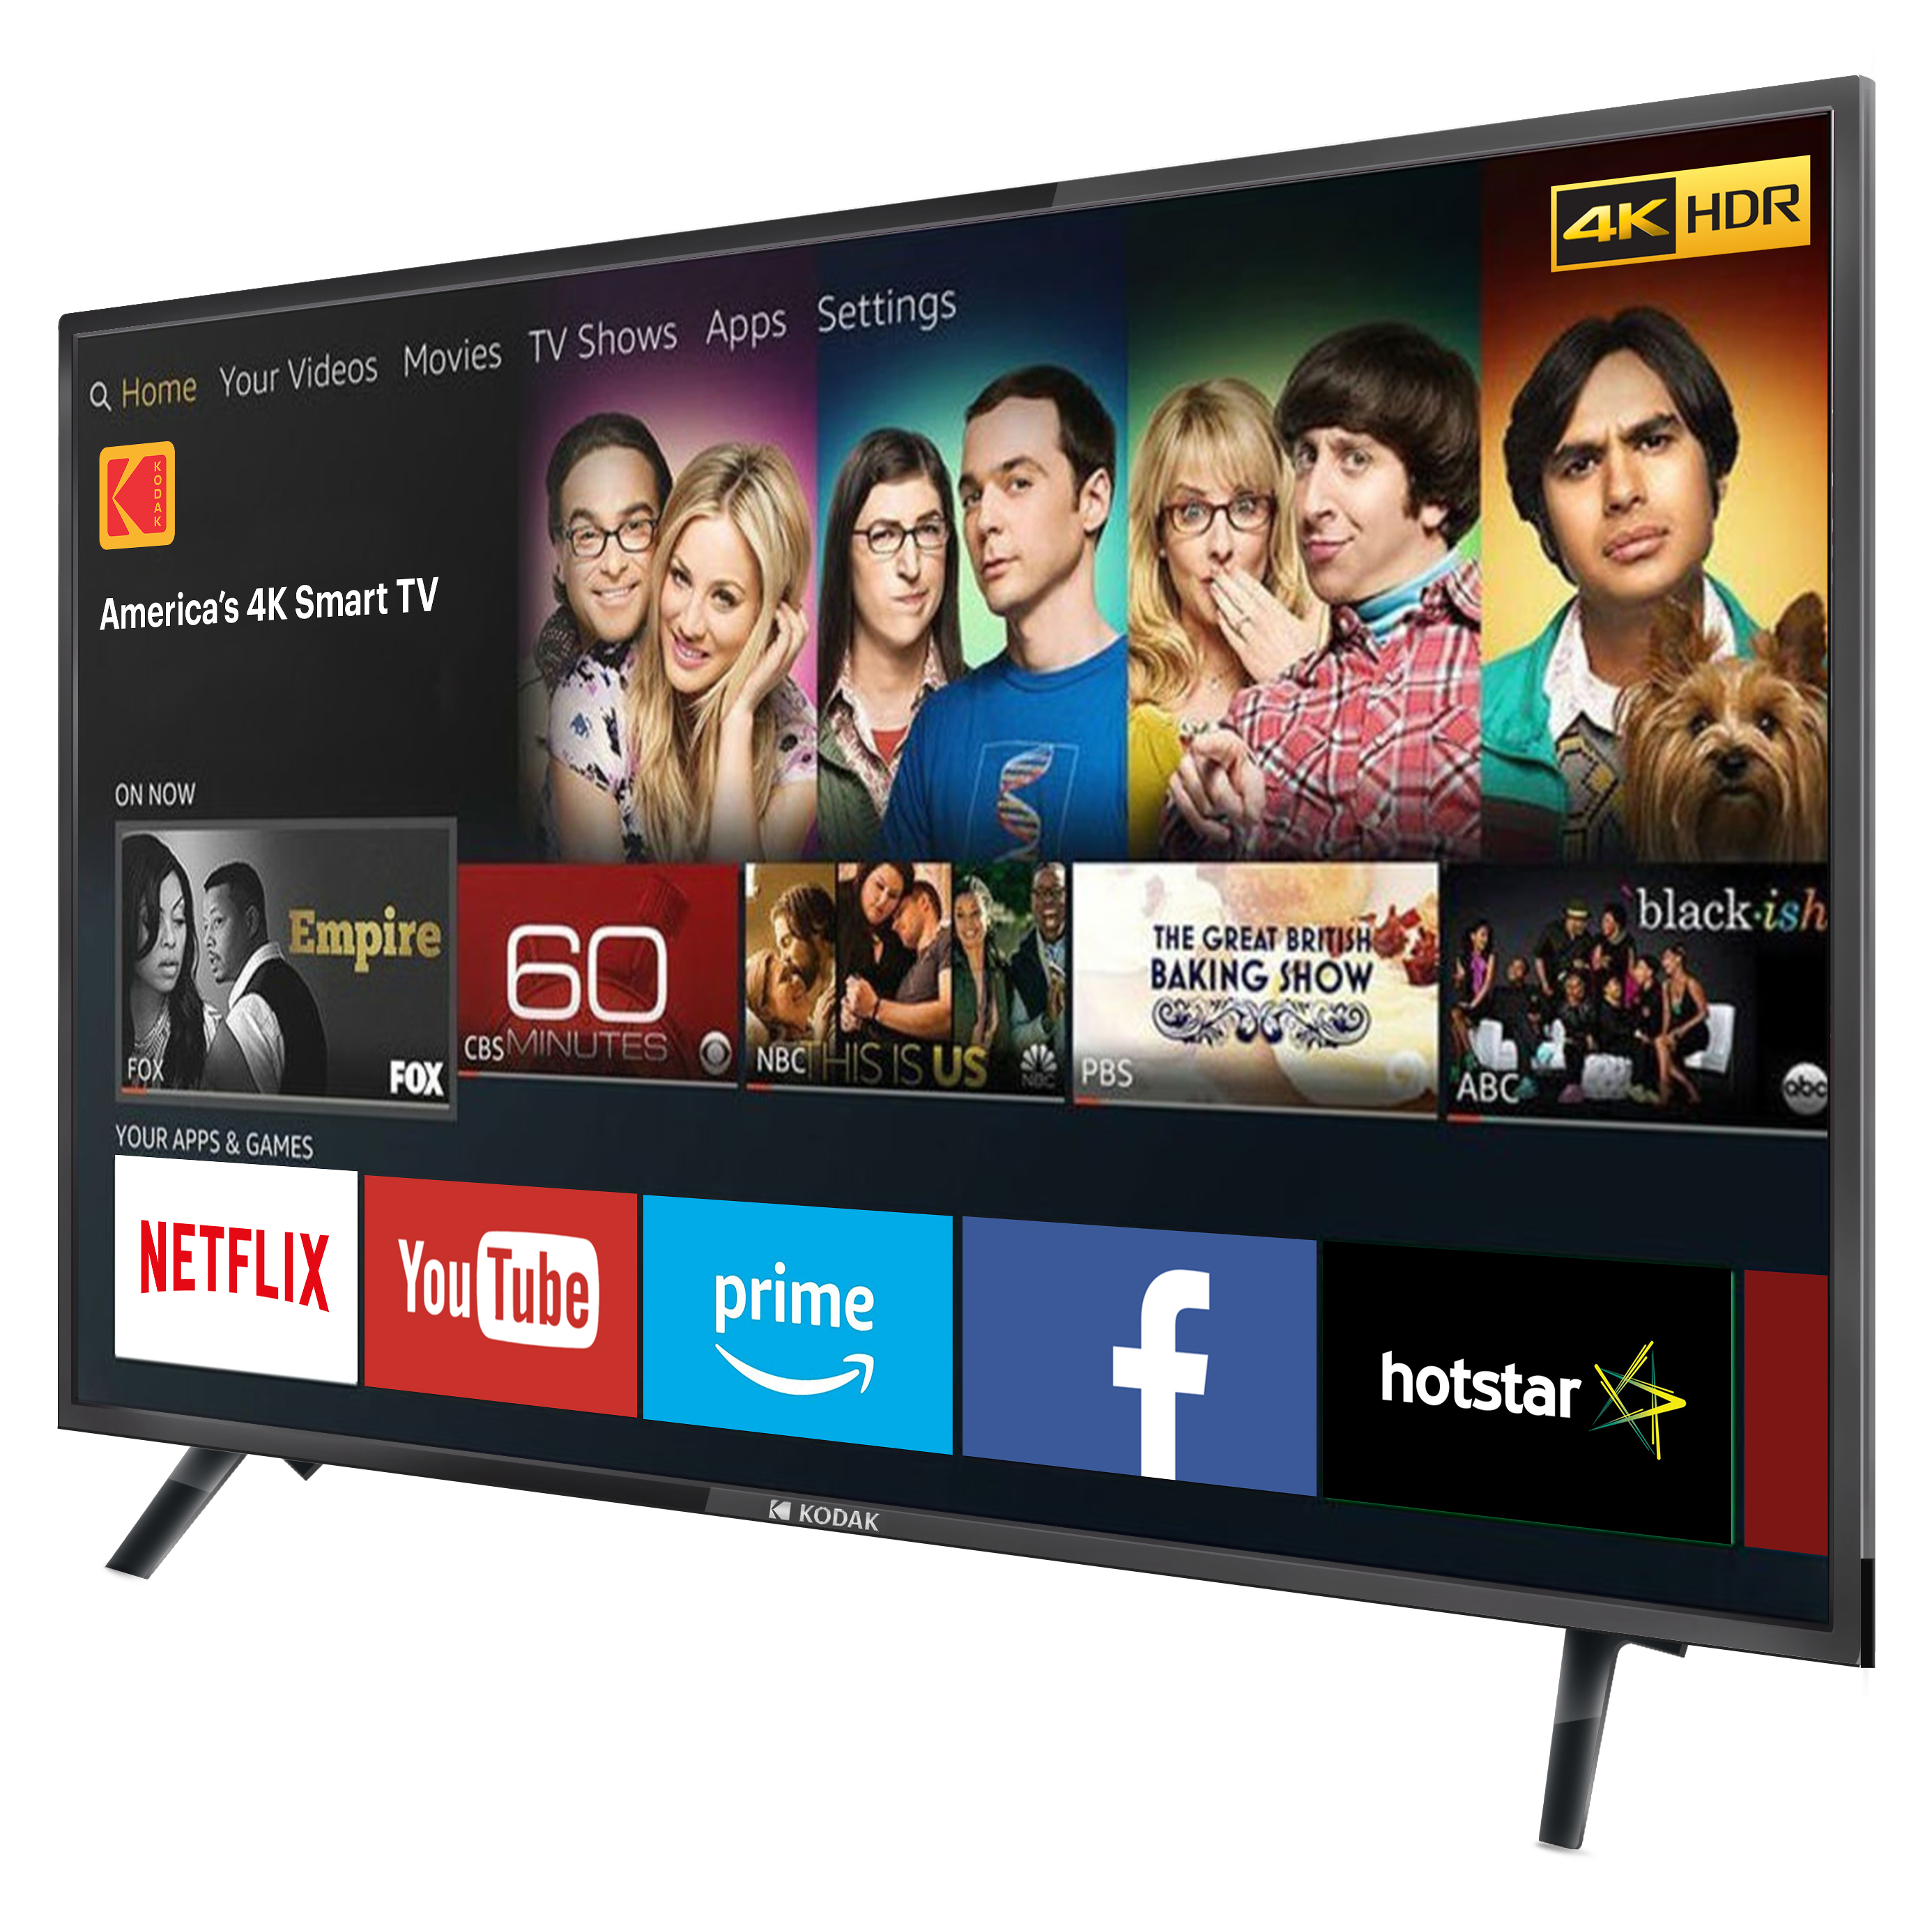 Kodak 43-inch UHDX 4K Smart TV